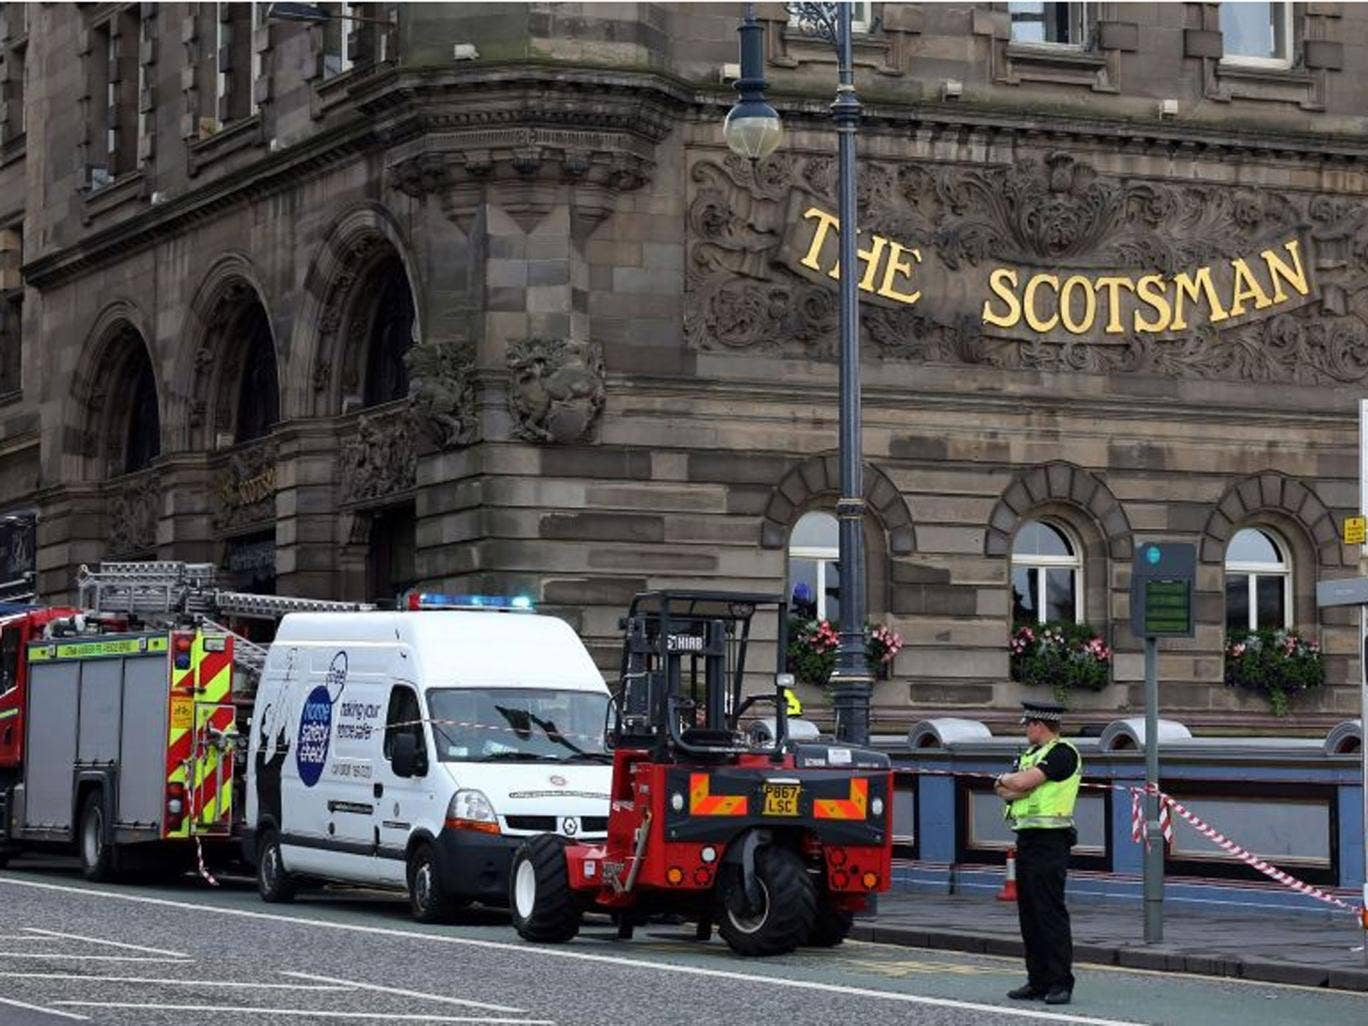 The sixth floor of the Scotsman Hotel was evacuated after two died in a 'chemical incident'